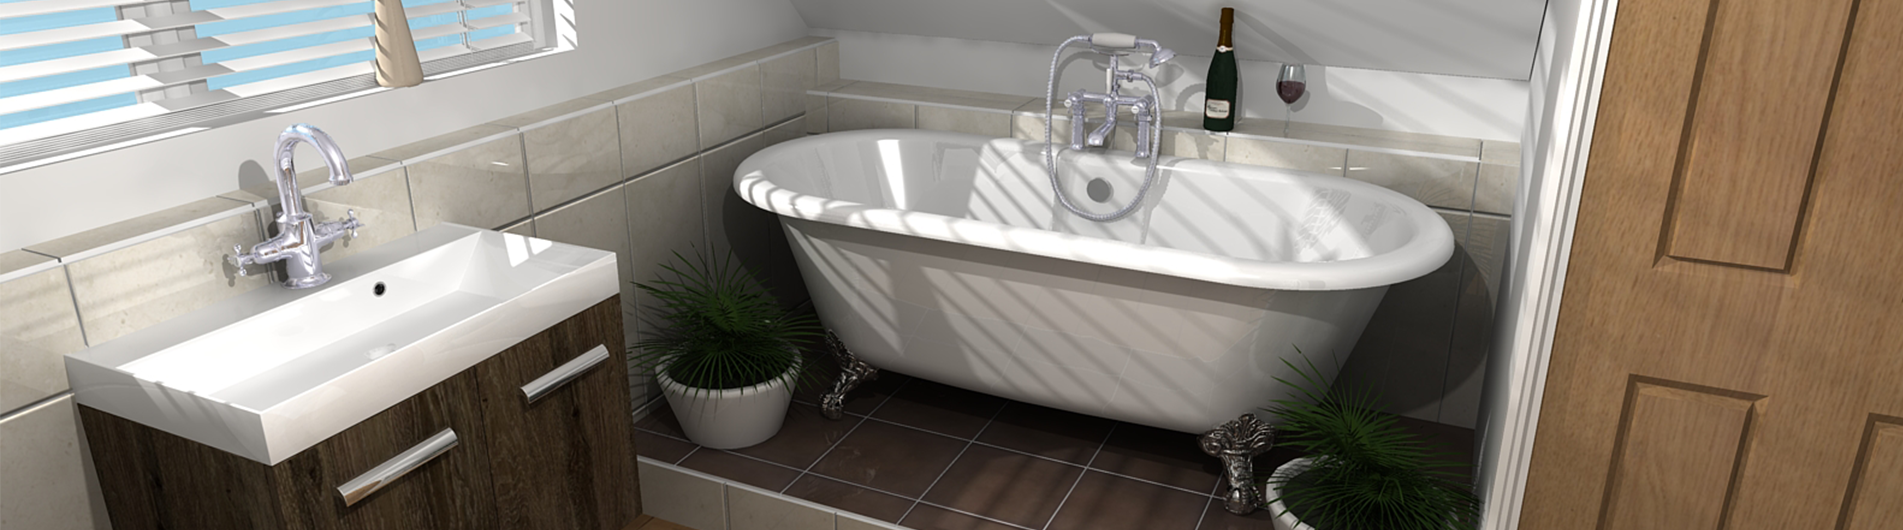 Bathroom designers kent 28 images bathroom design kent for Bathroom designs kent